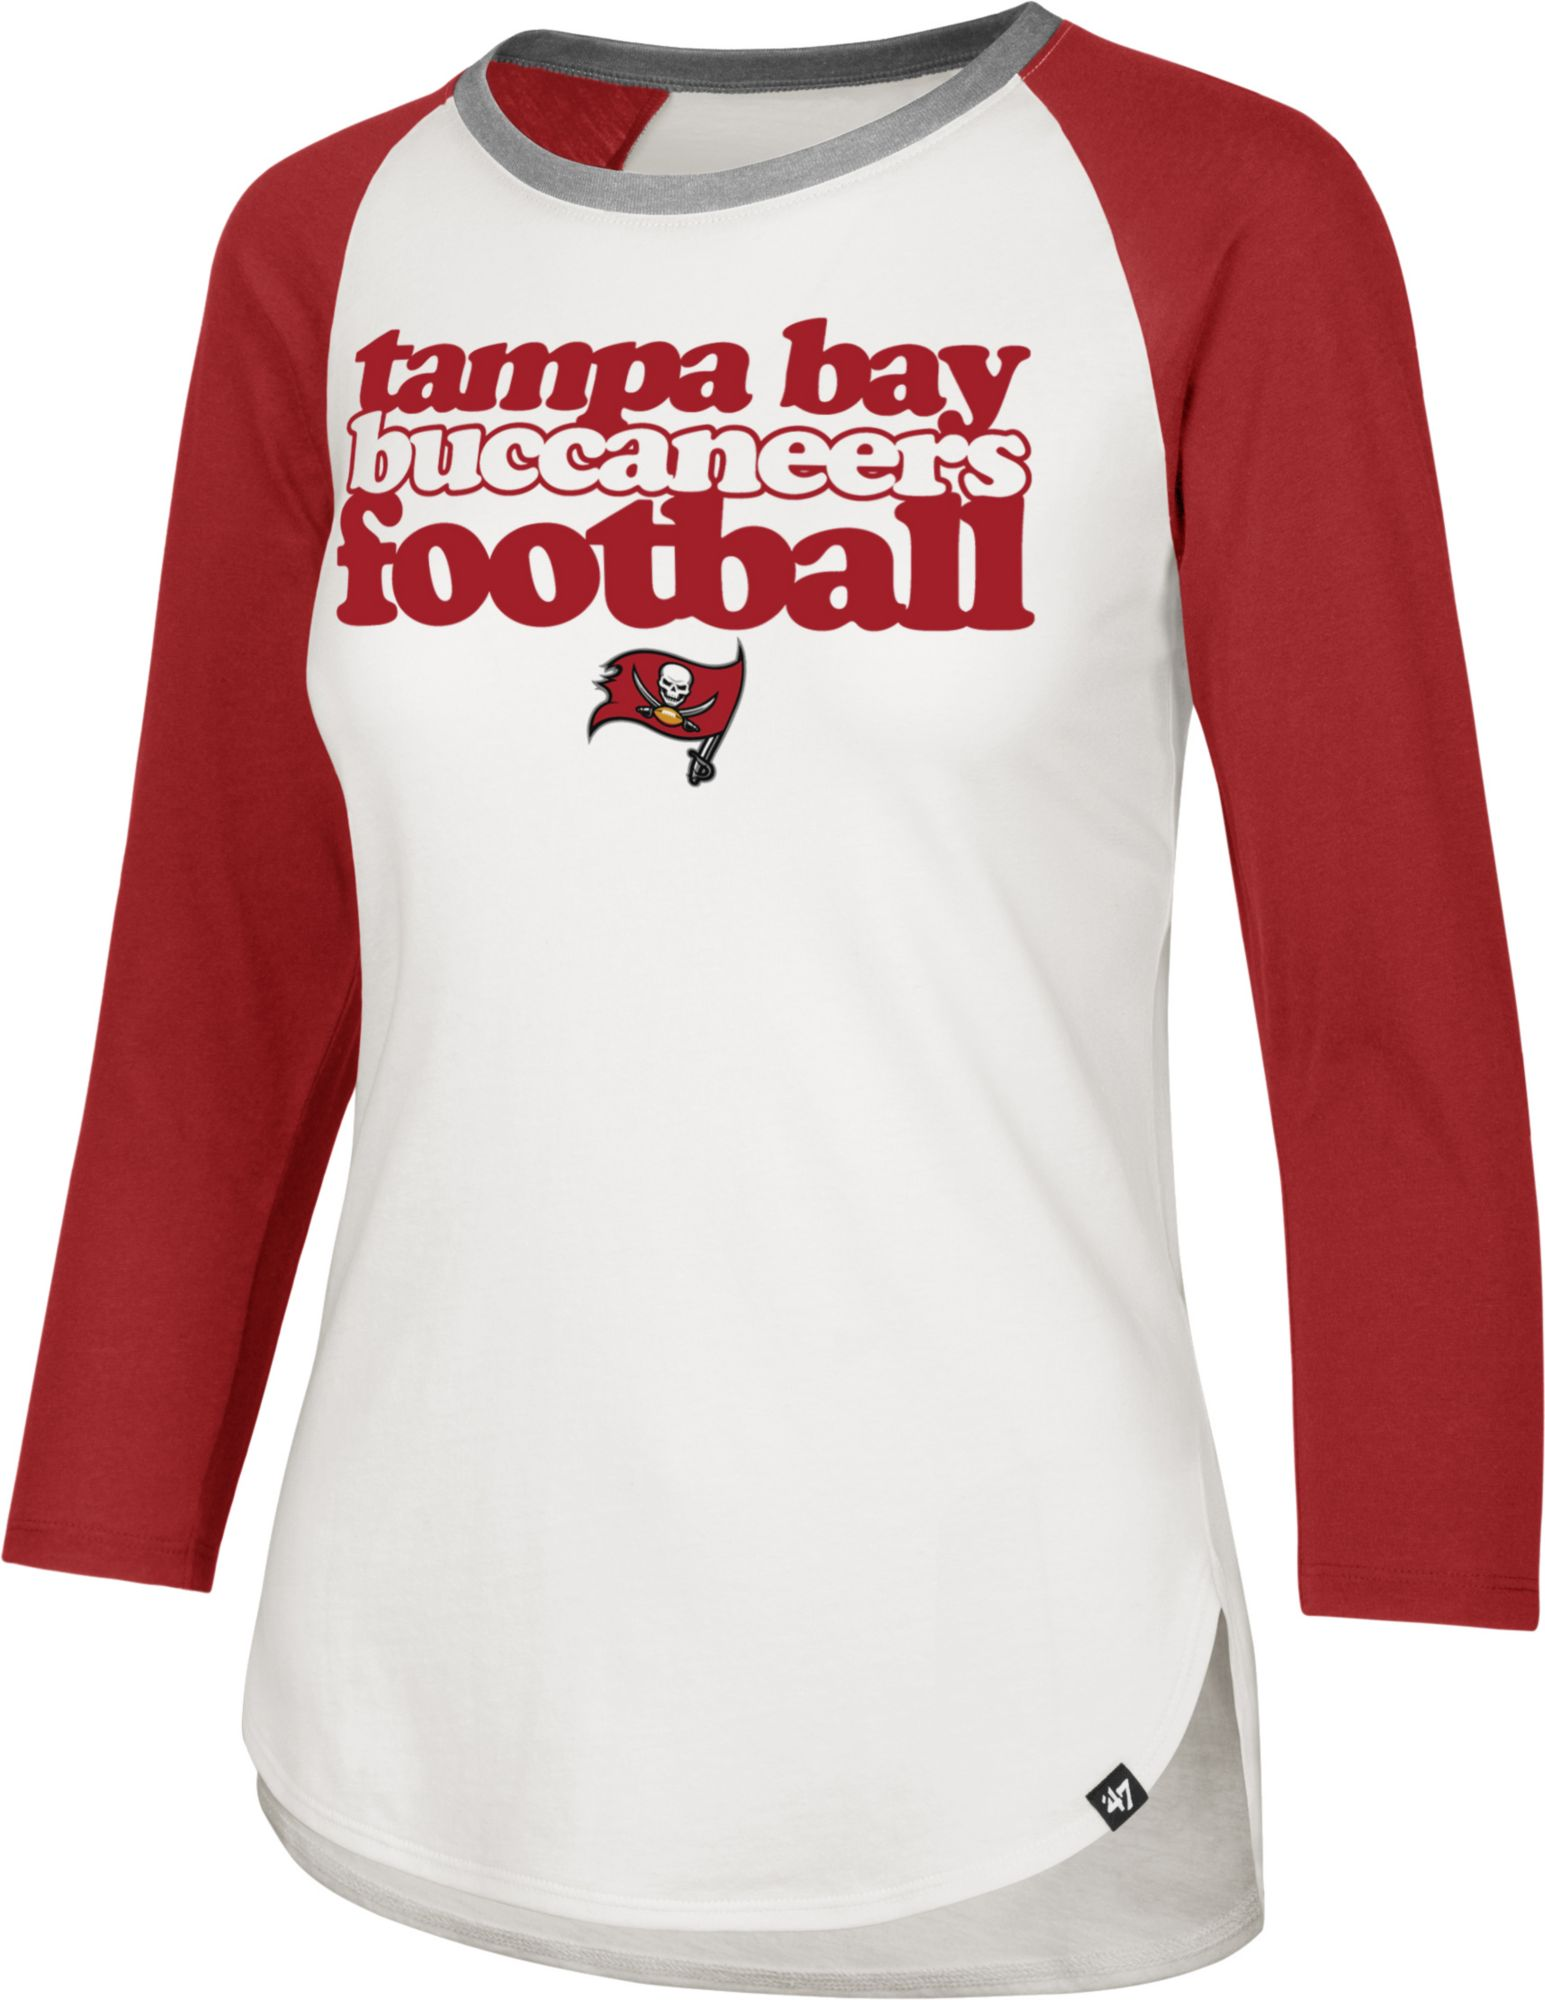 buccaneers throwback t shirt